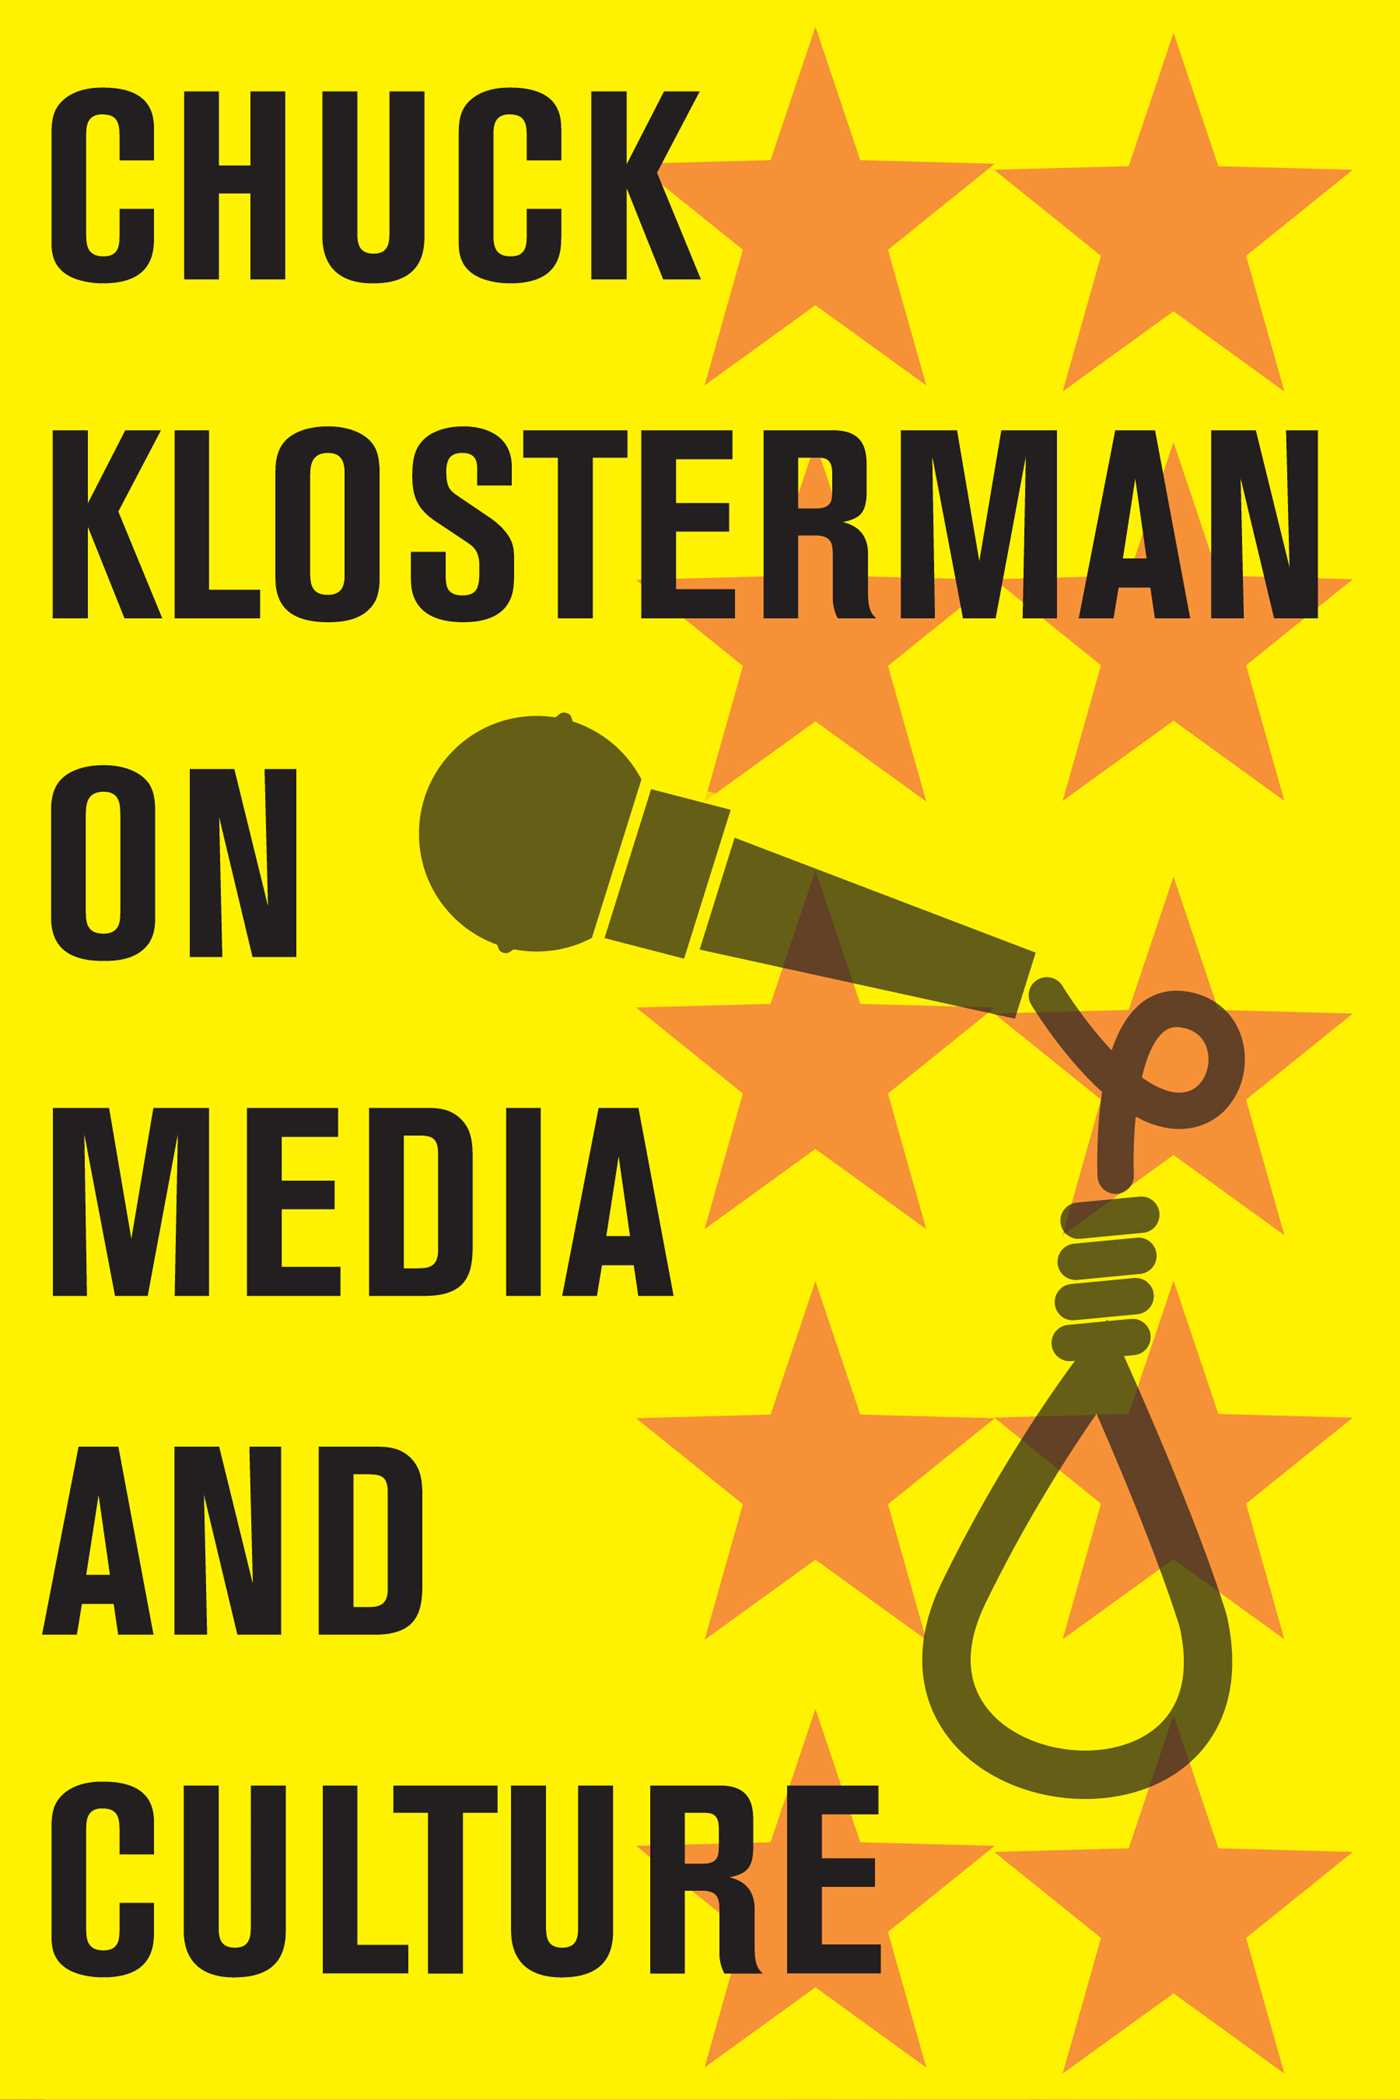 Chuck klosterman on media and culture 9781451624960 hr